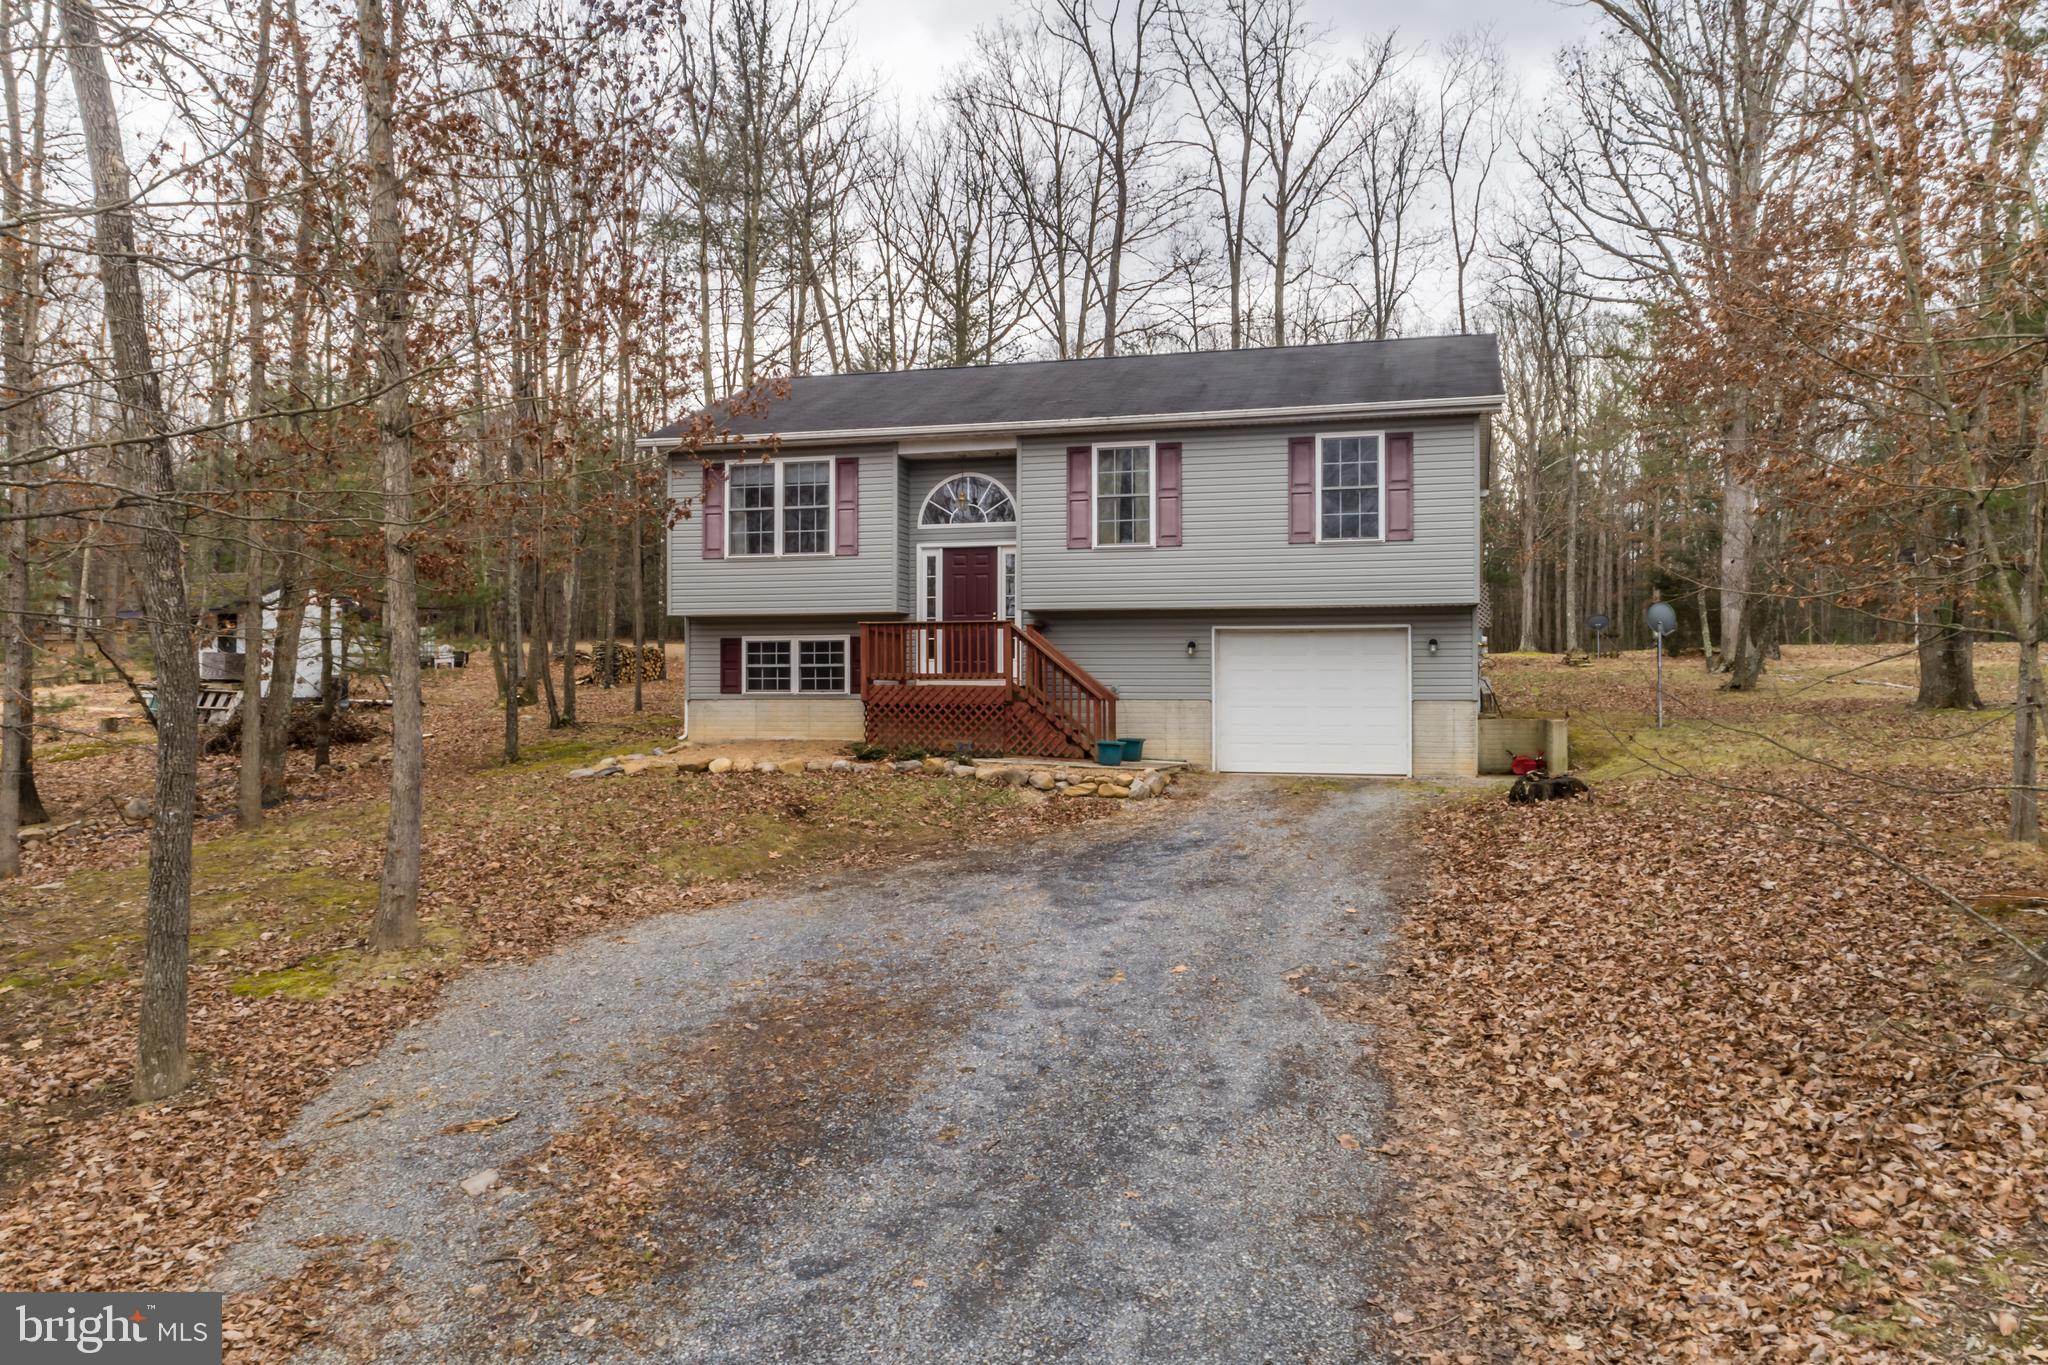 700 WARDEN CIRCLE ROAD, WARDENSVILLE, WV 26851